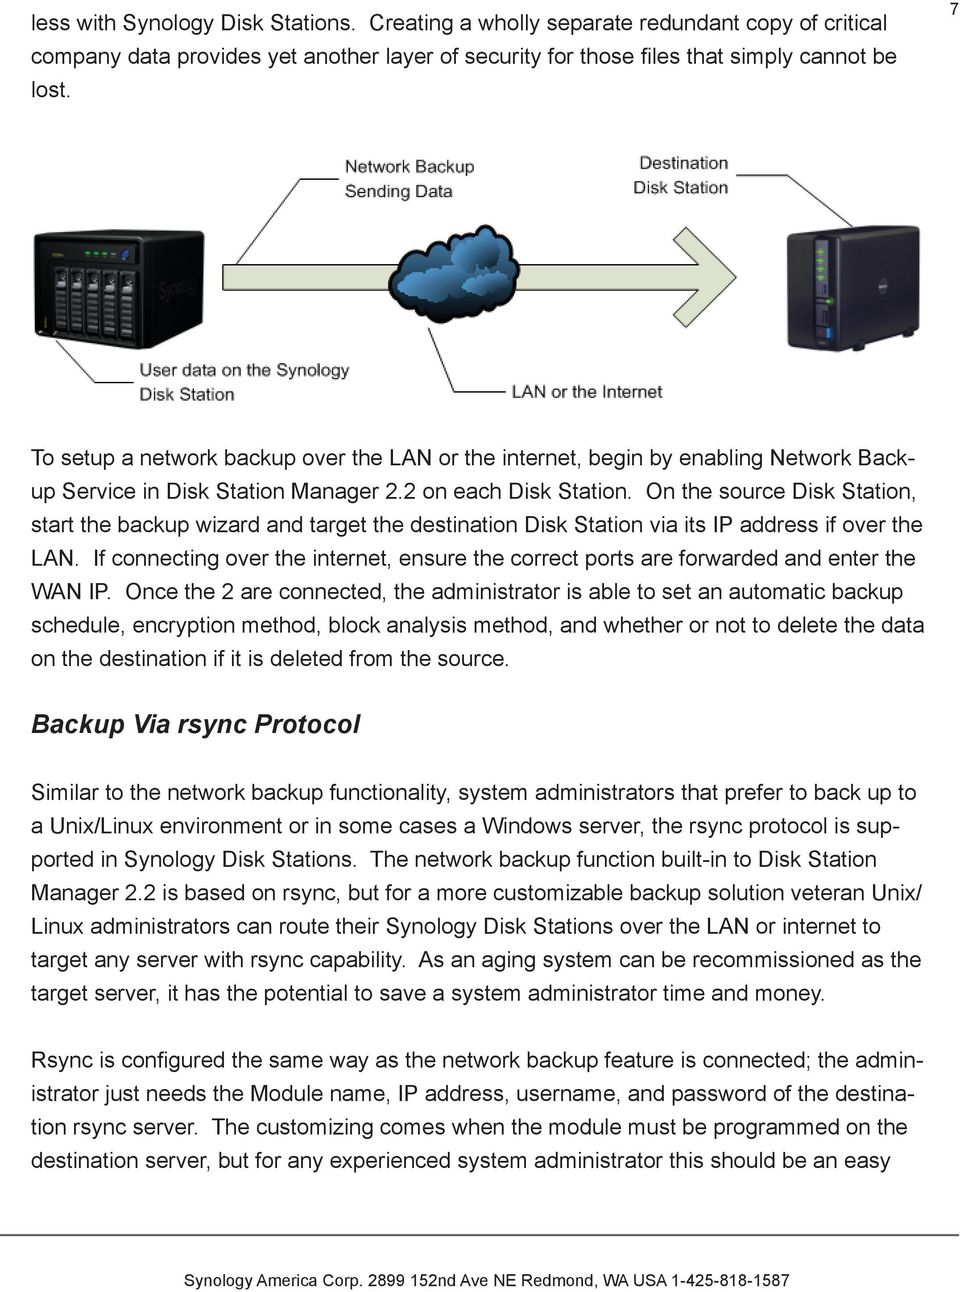 Network backup conducted in this manner provides a larger volume to back up to than current external USB or esata drives so a complete backup is possible.